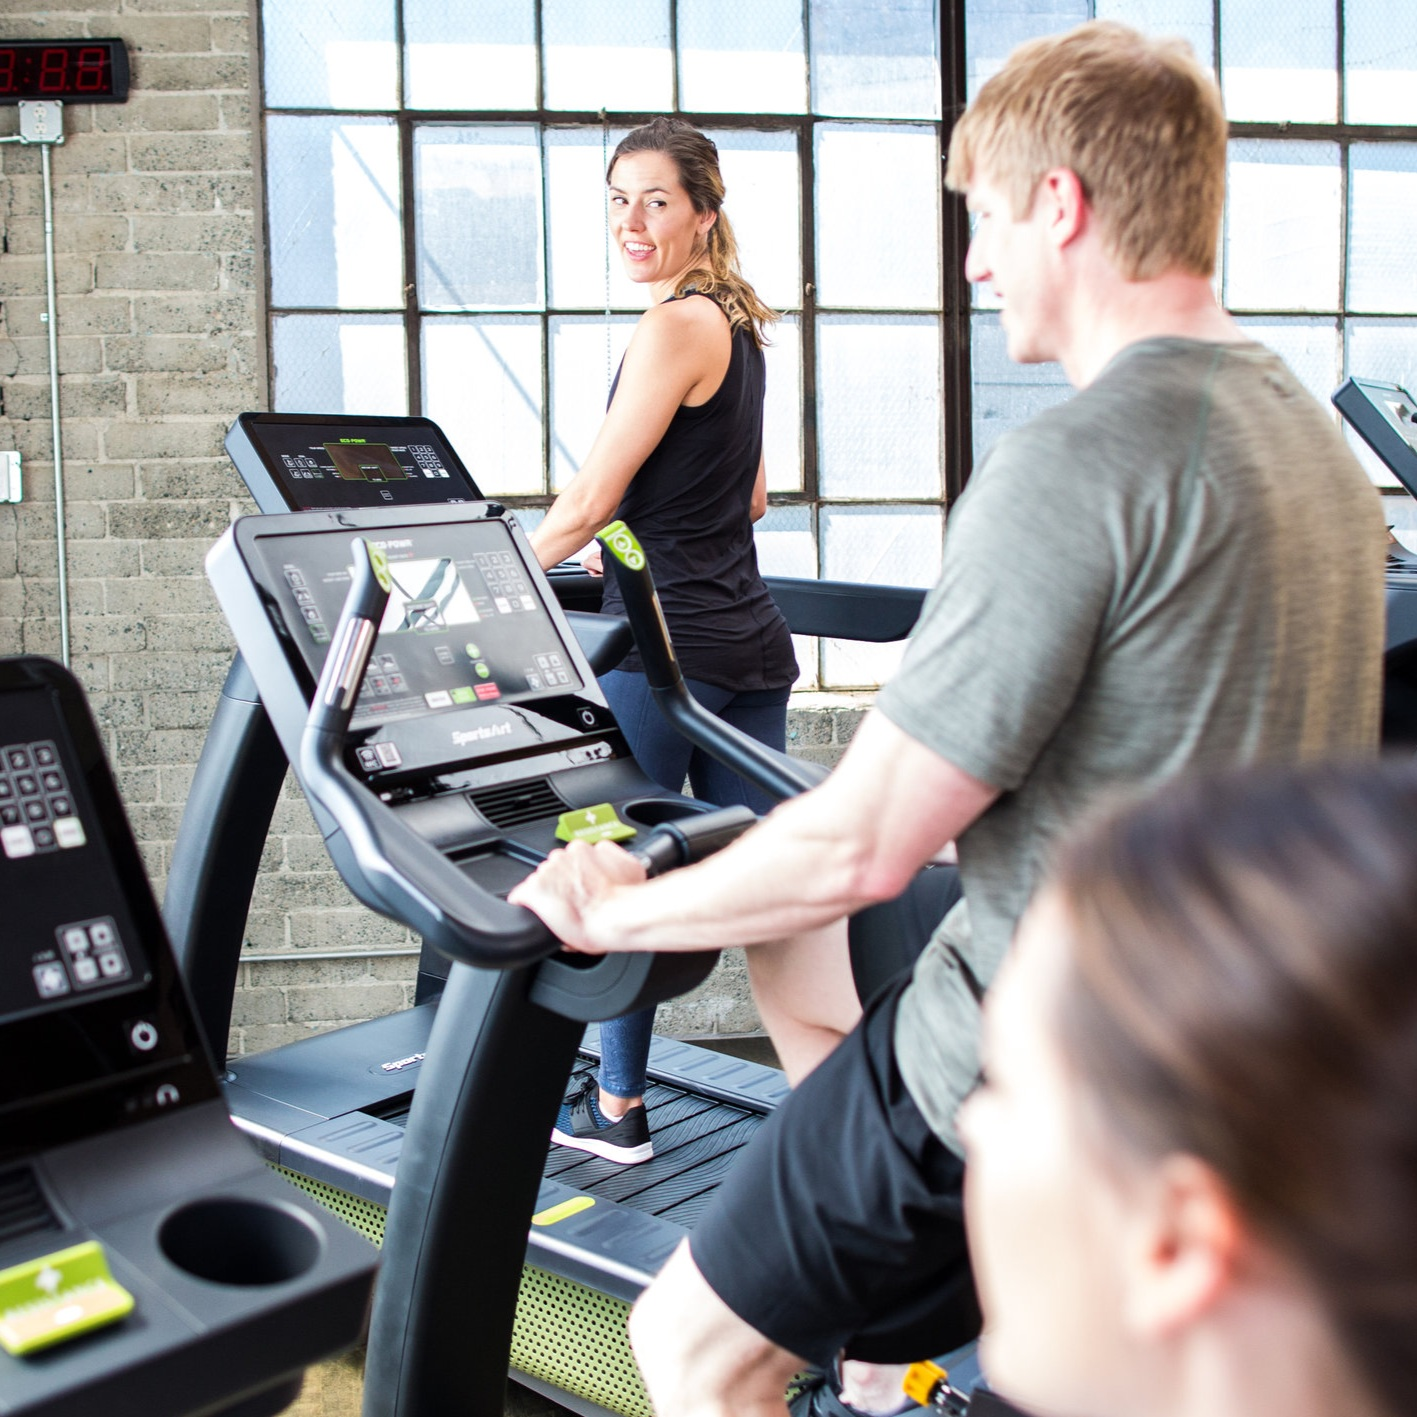 Outfit your Facility Gym - Blow away your competitors with a gym that attracts the tenants, customers, or employees that you want.